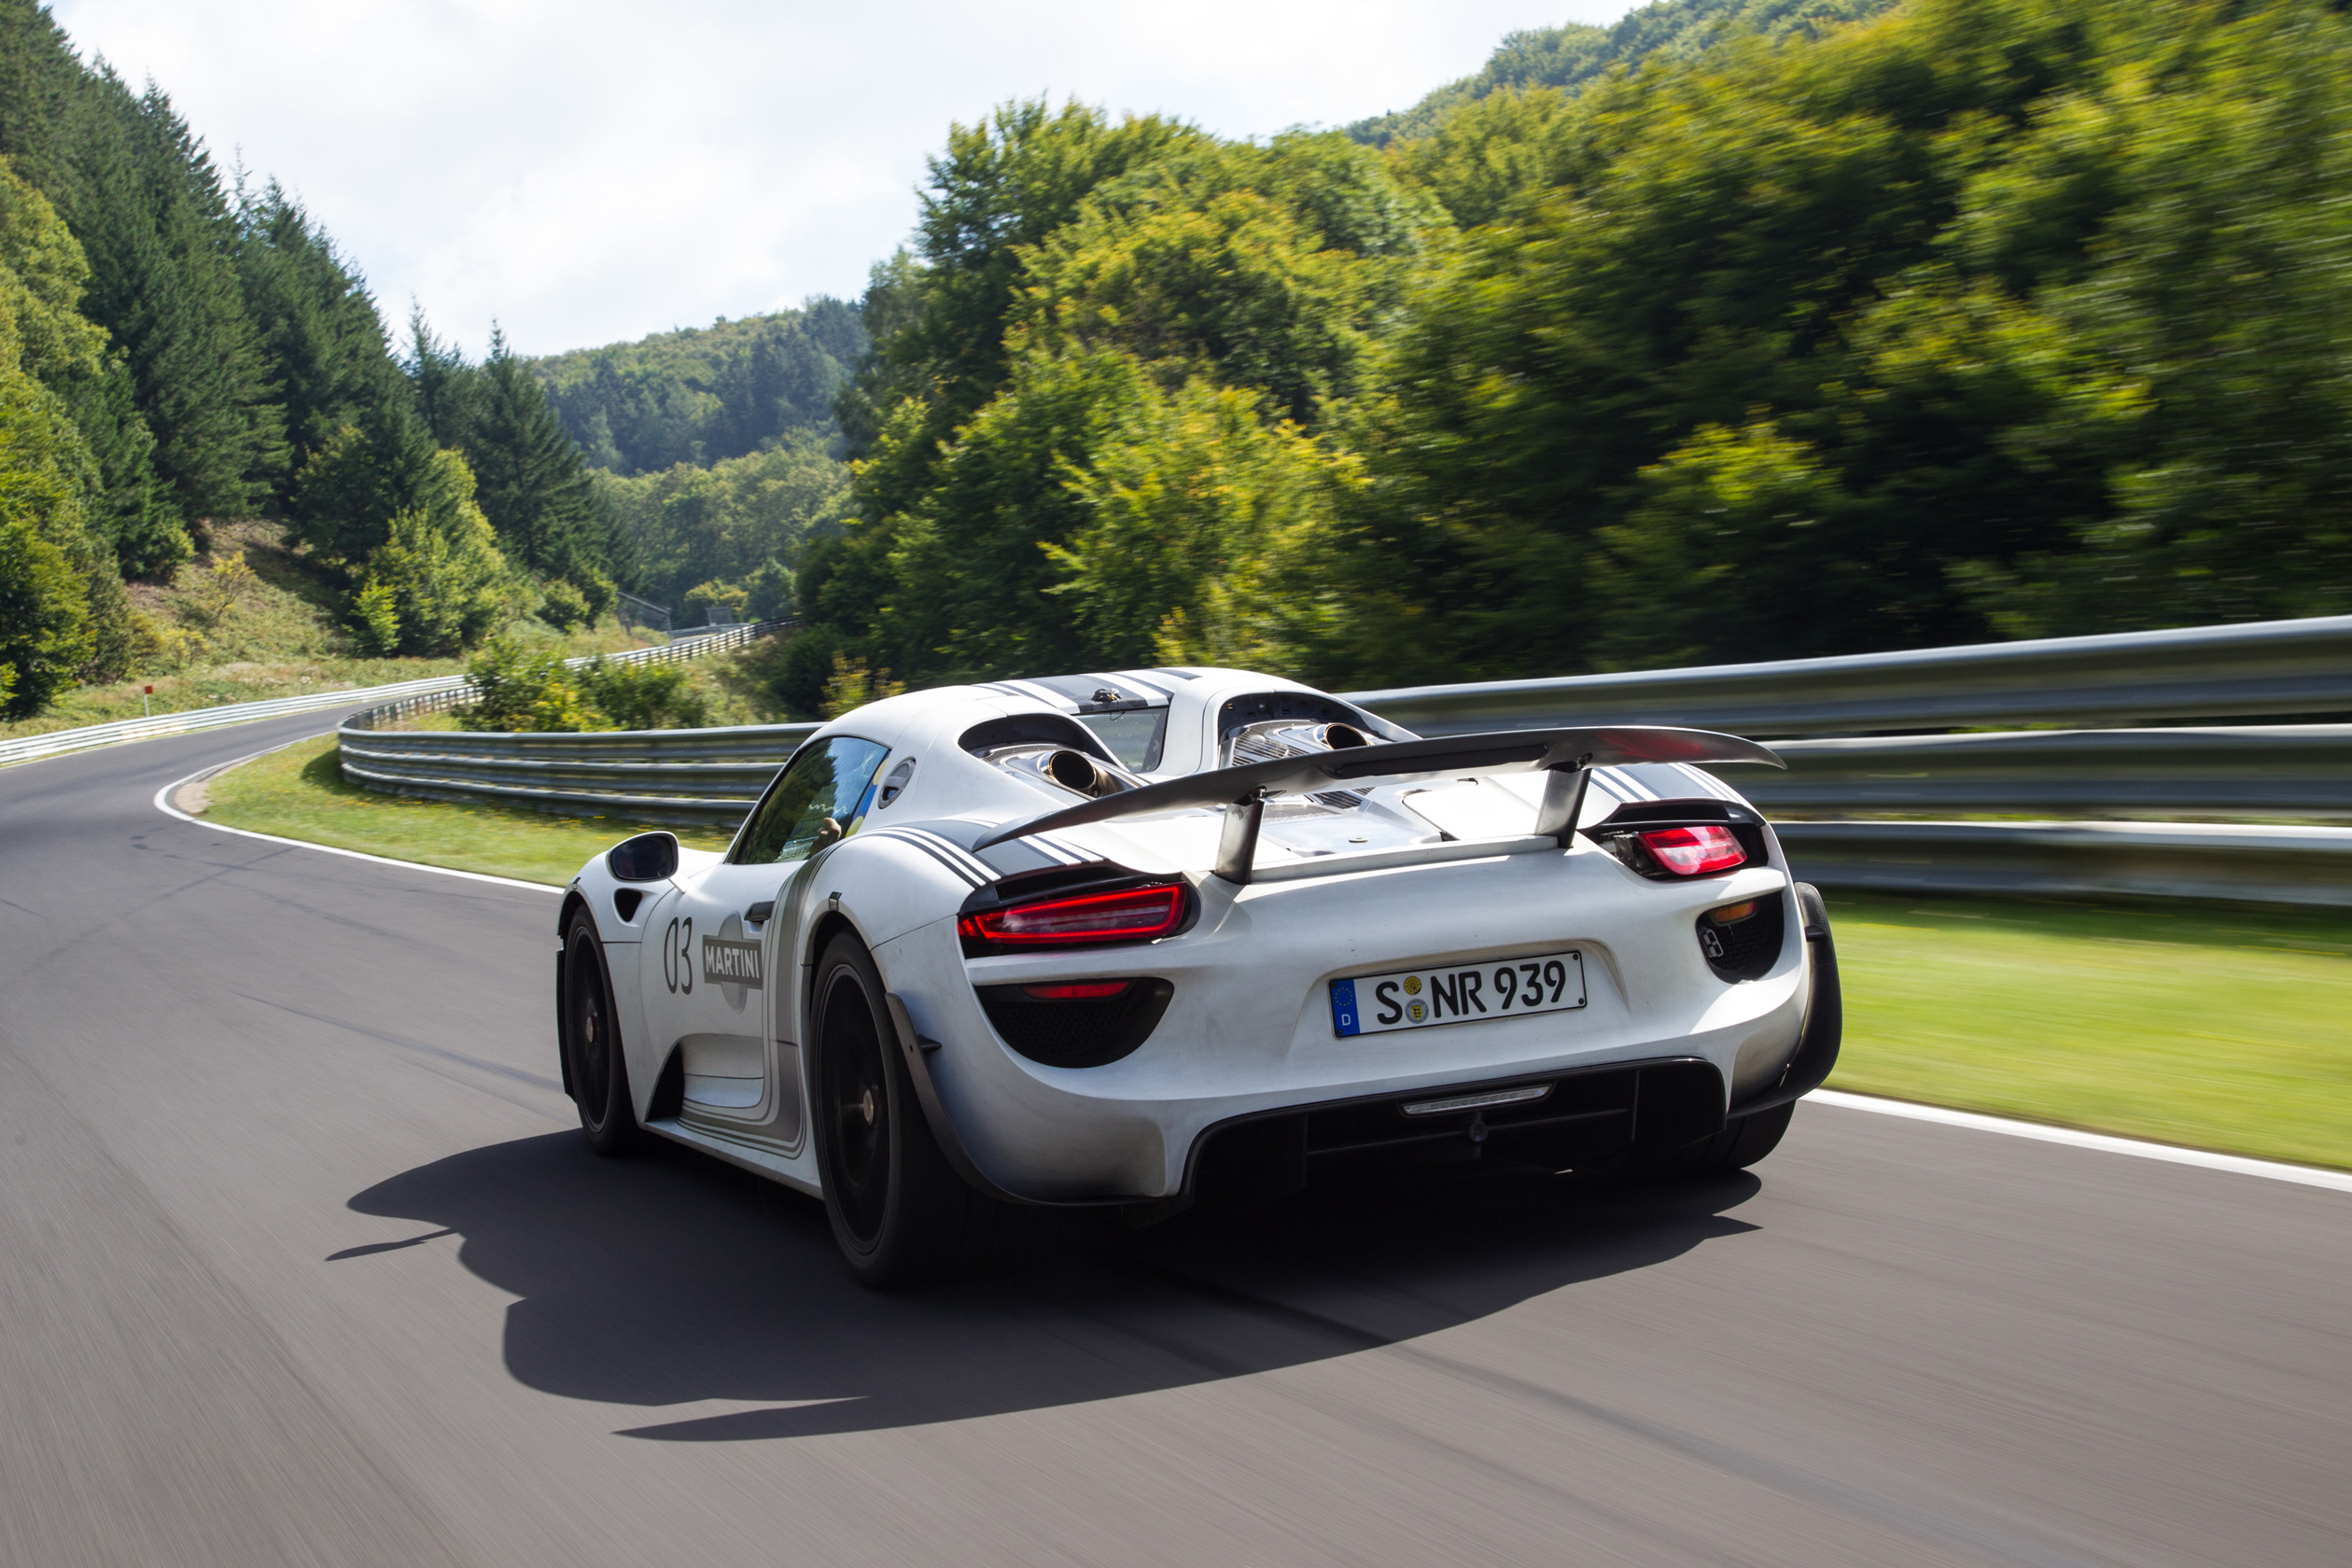 Porsche 918 Prototype Smashes Previous Nurburgring Lap Time